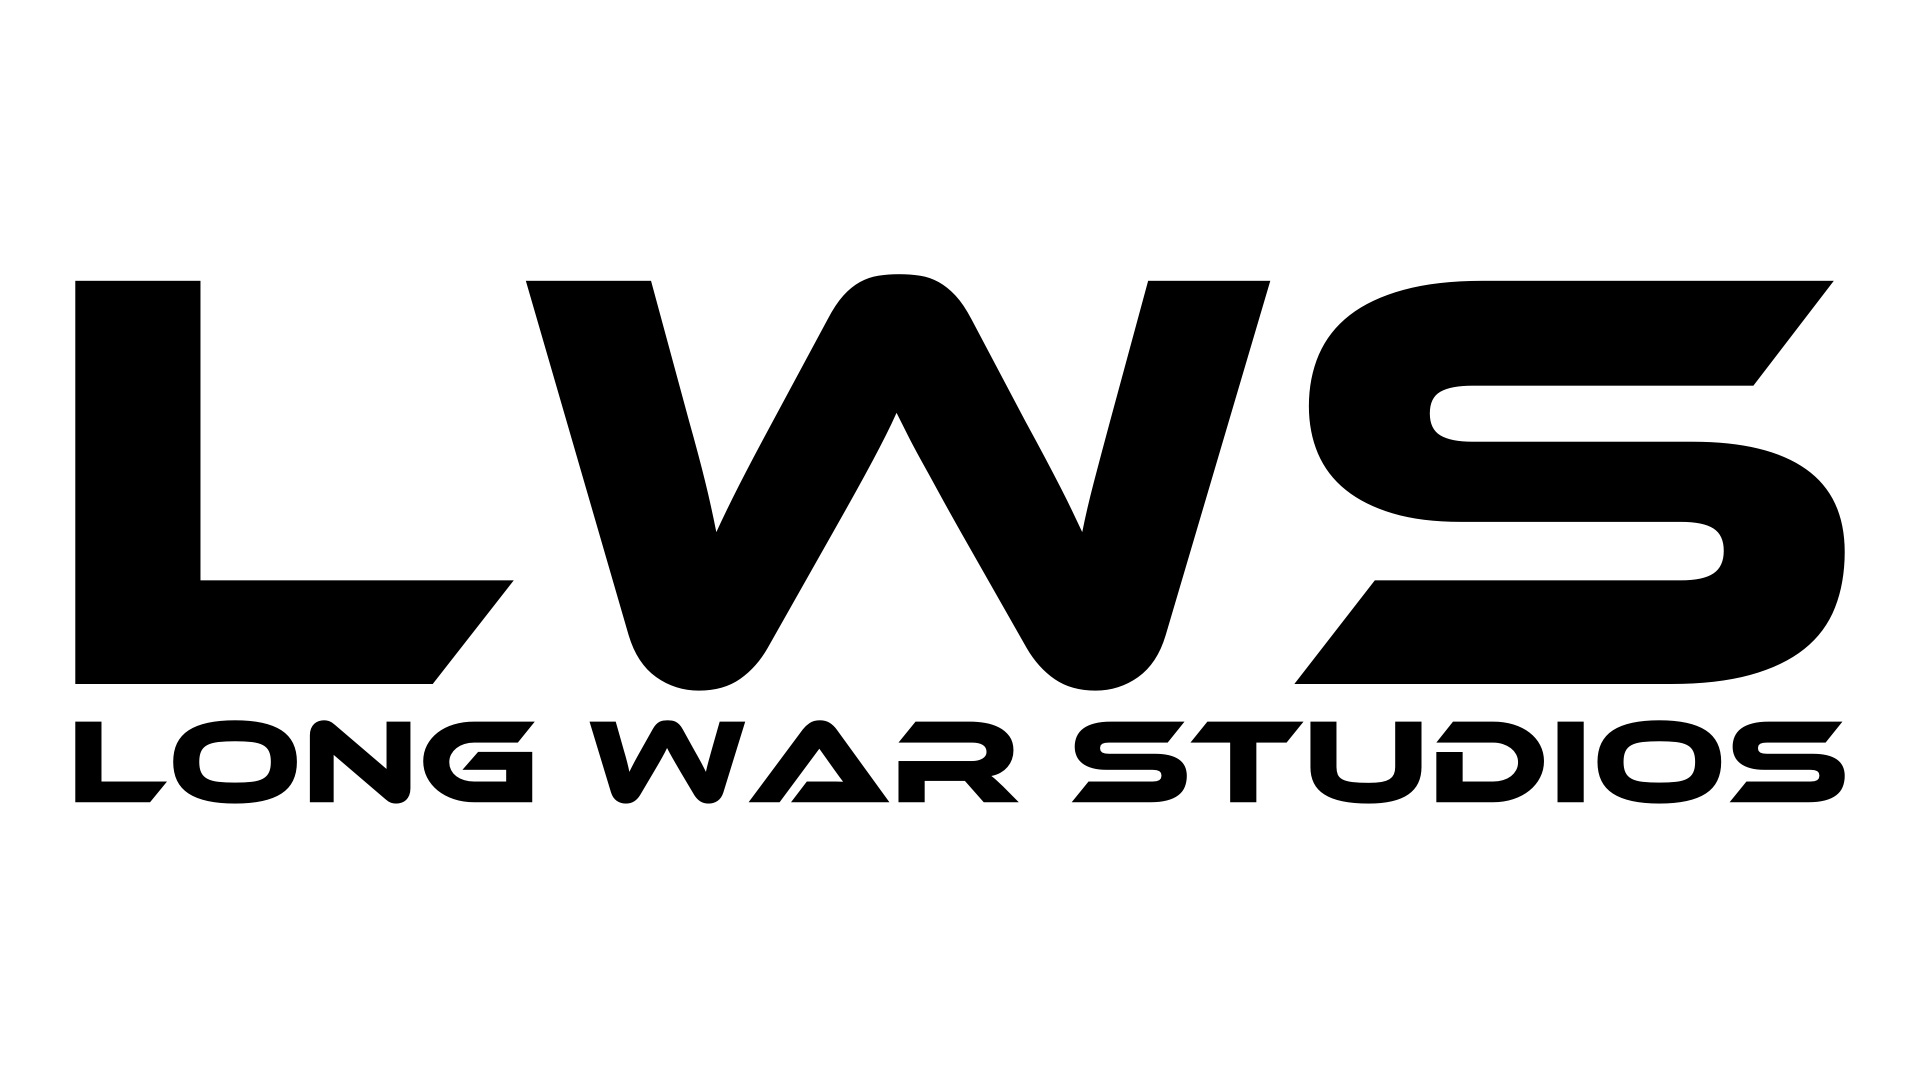 EN - Long War Studios Preparing XCOM 2 Content for Launc